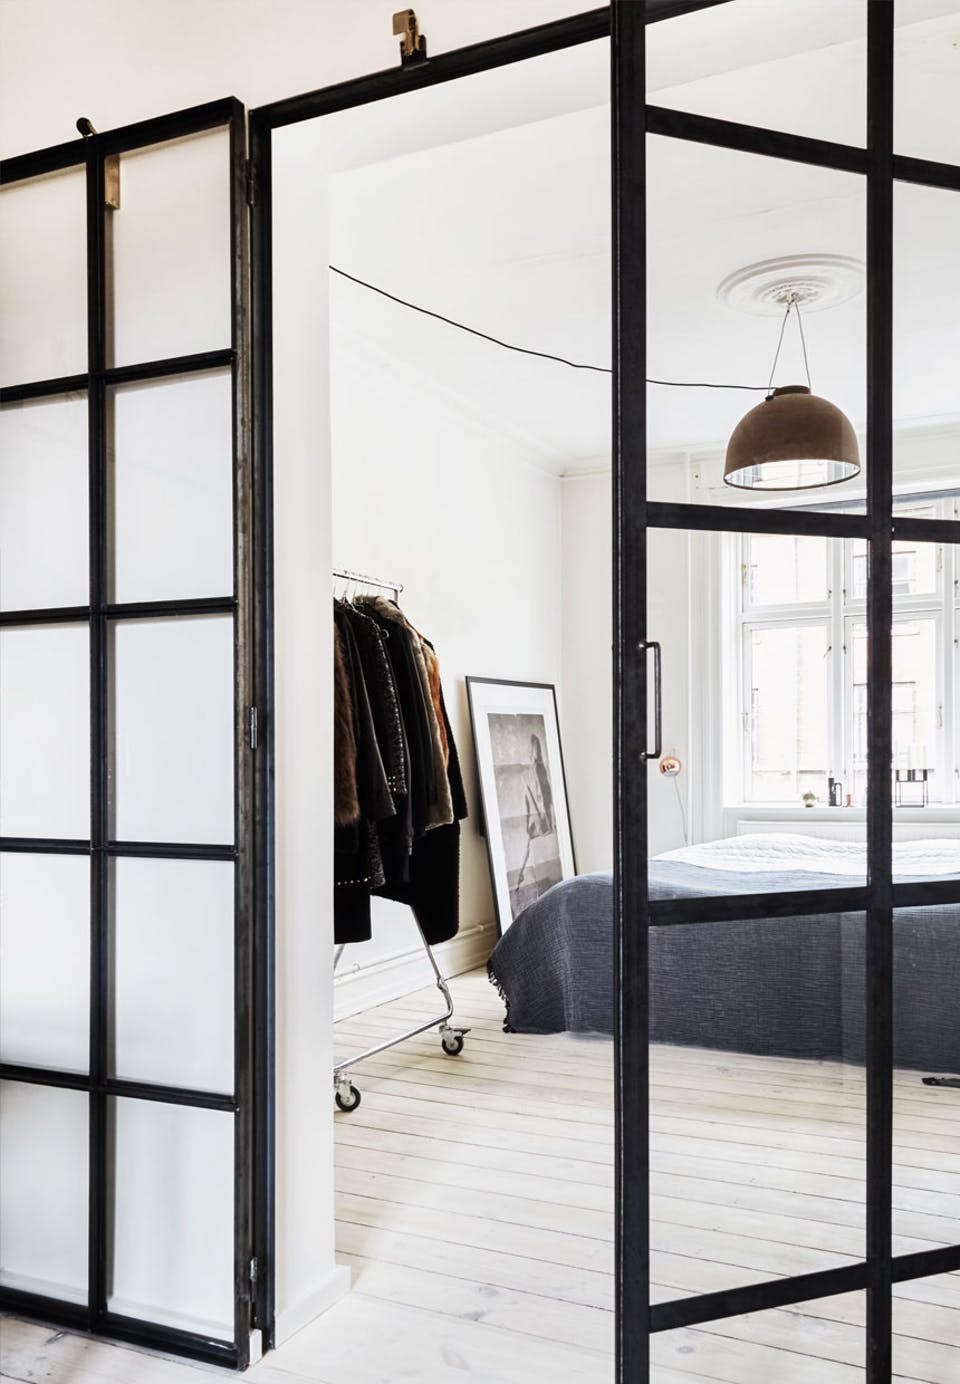 Black metal framed glass doors separate the bedroom from the rest of the apartment, they let light in and look lightweight